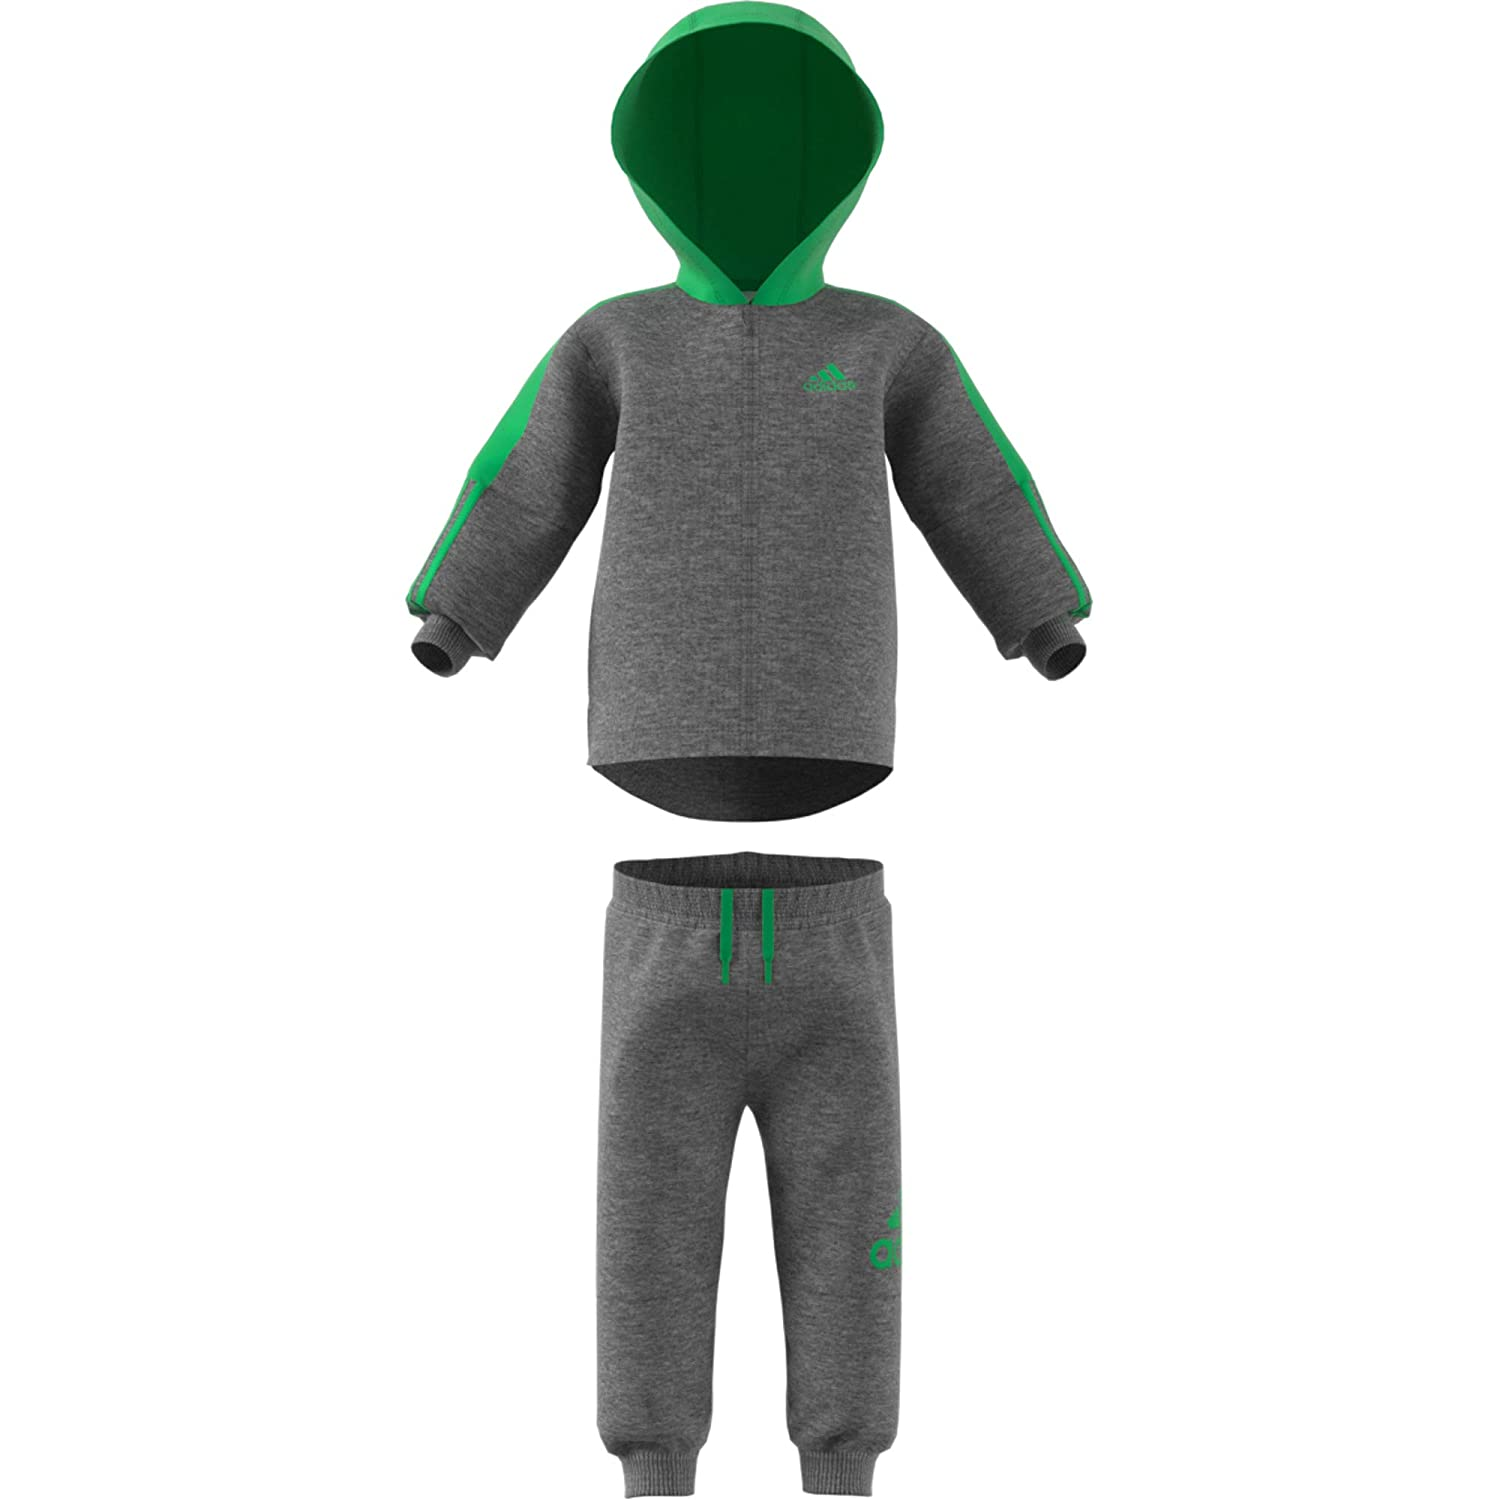 ADIDAS BOYS TODDLER PLAY OUTDOOR WARM FLEECE HOODED TRACKSUIT COTTON 70/% NEW